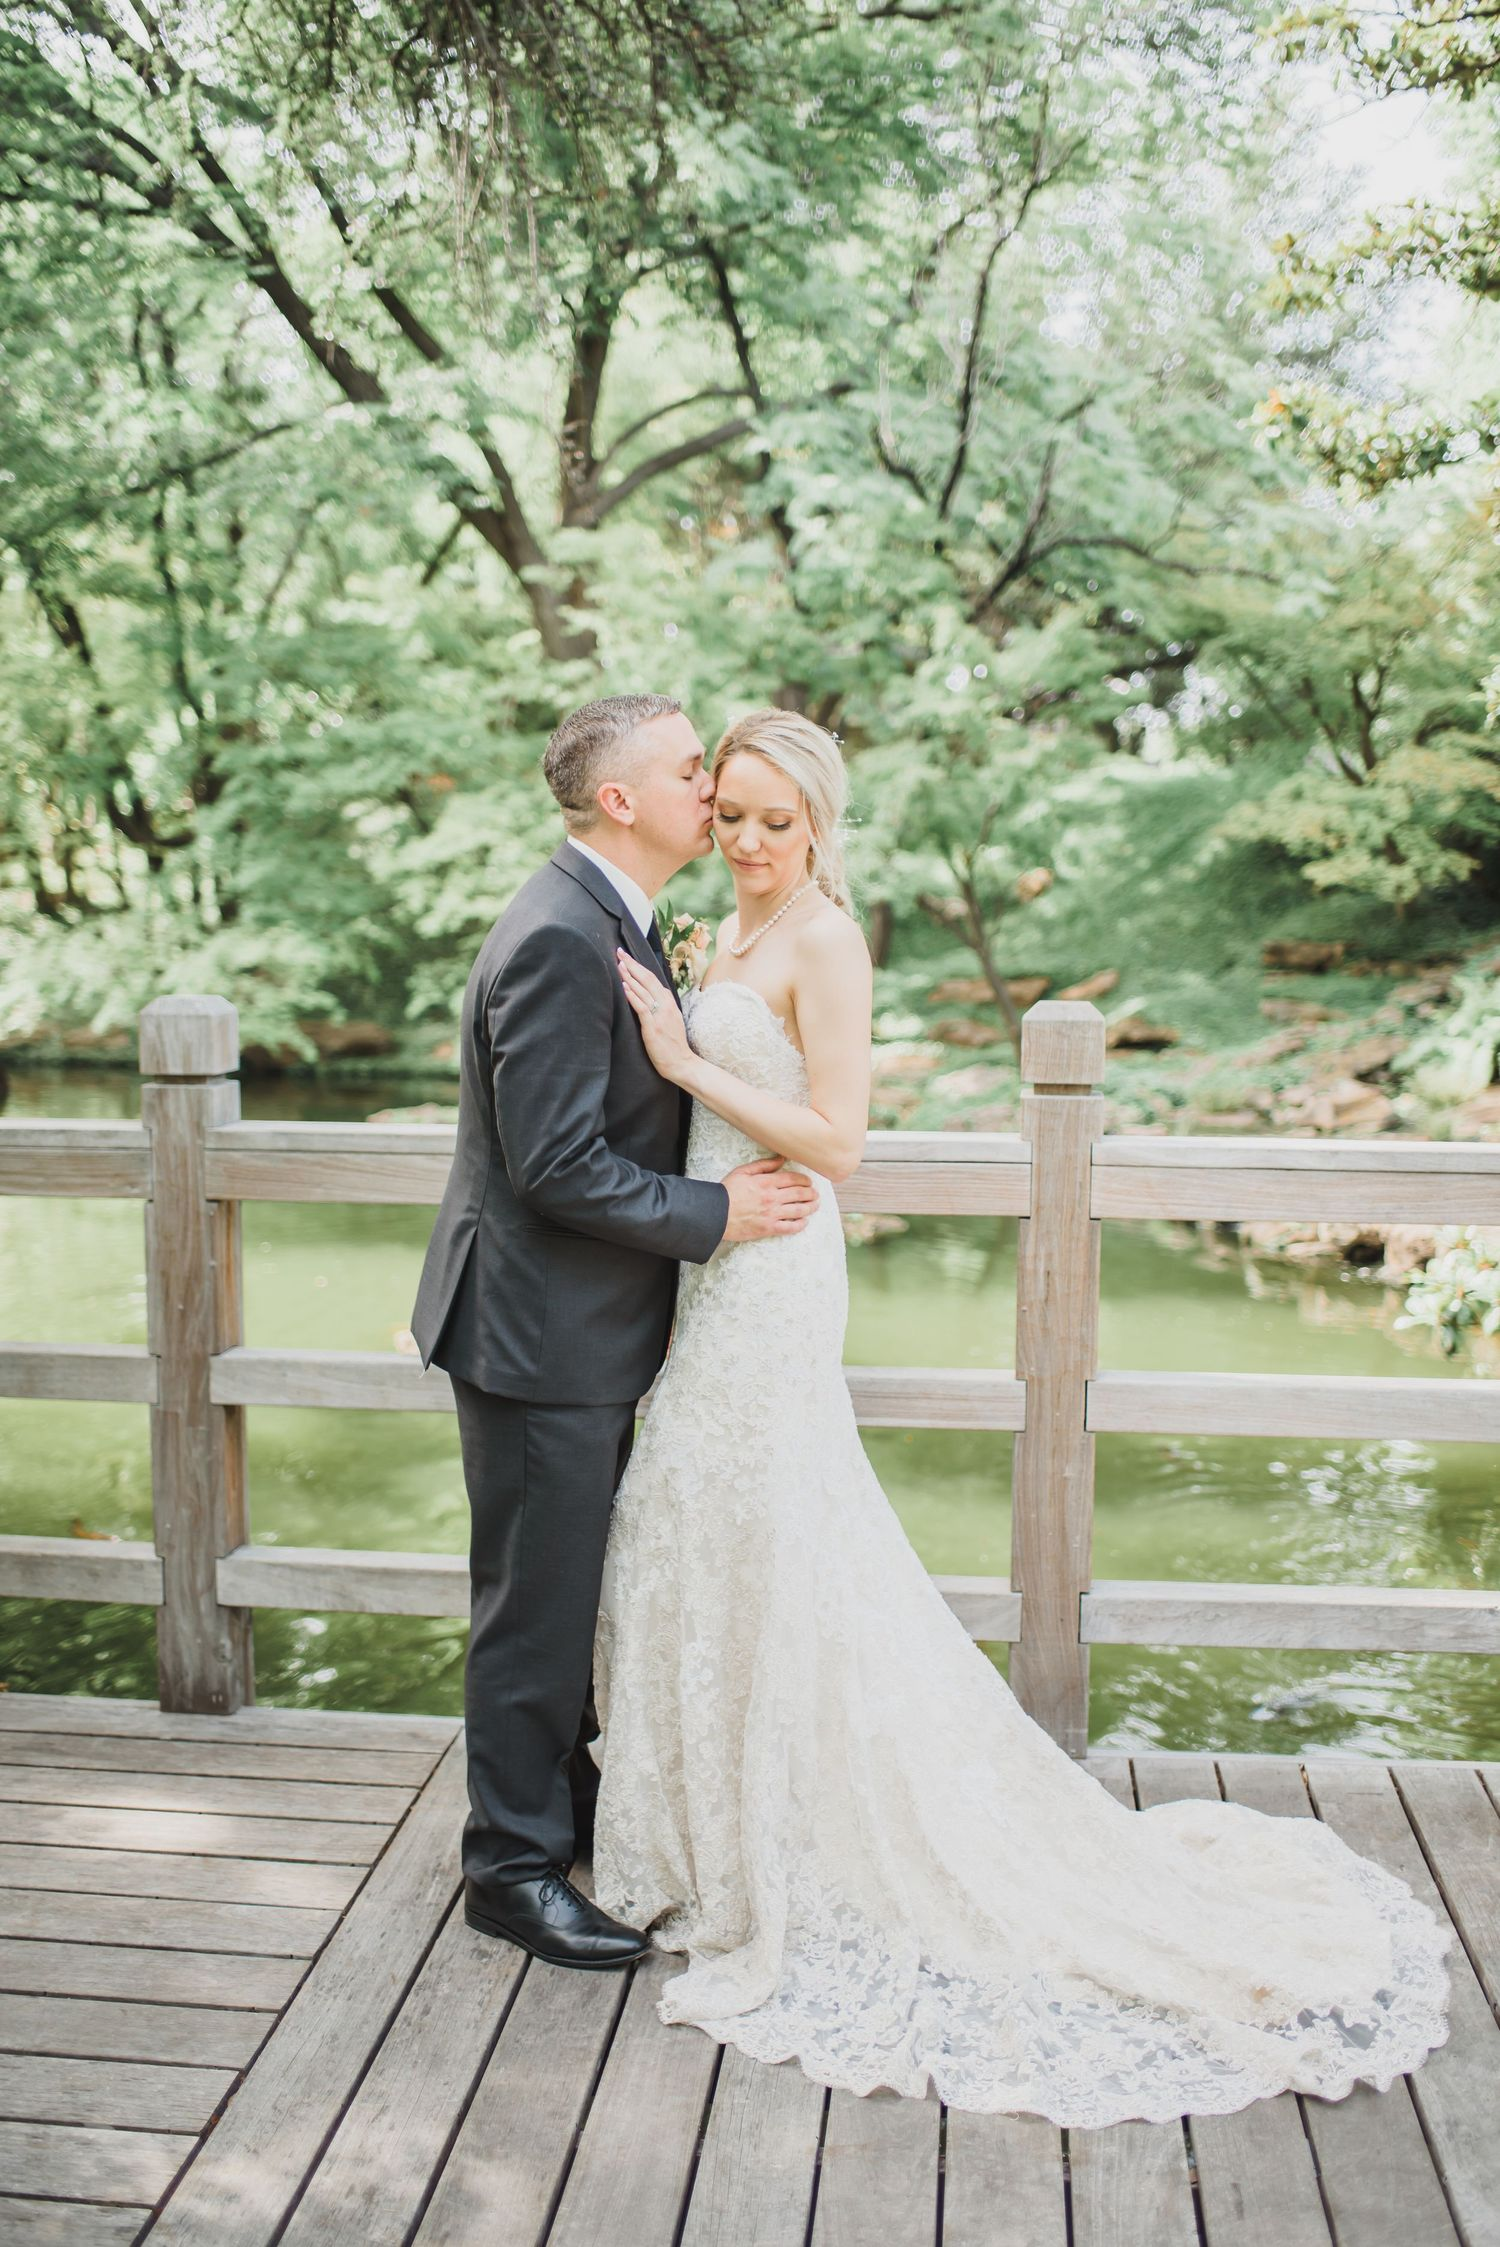 wedding at The Japanese Garden — Fort Worth Botanic Garden